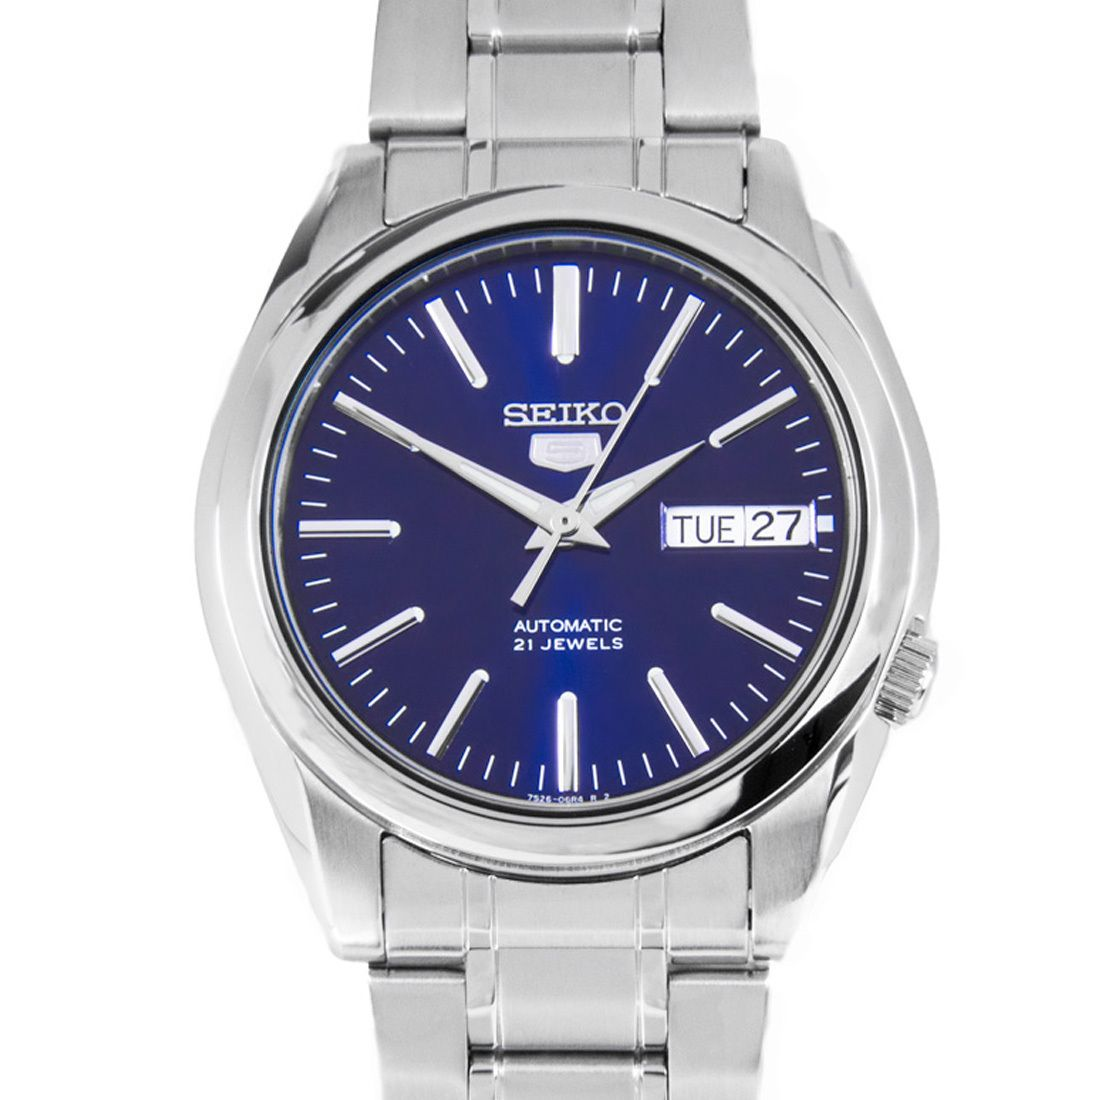 Seiko 5 Automatic Blue Dial WR30m Stainless Steel Mens